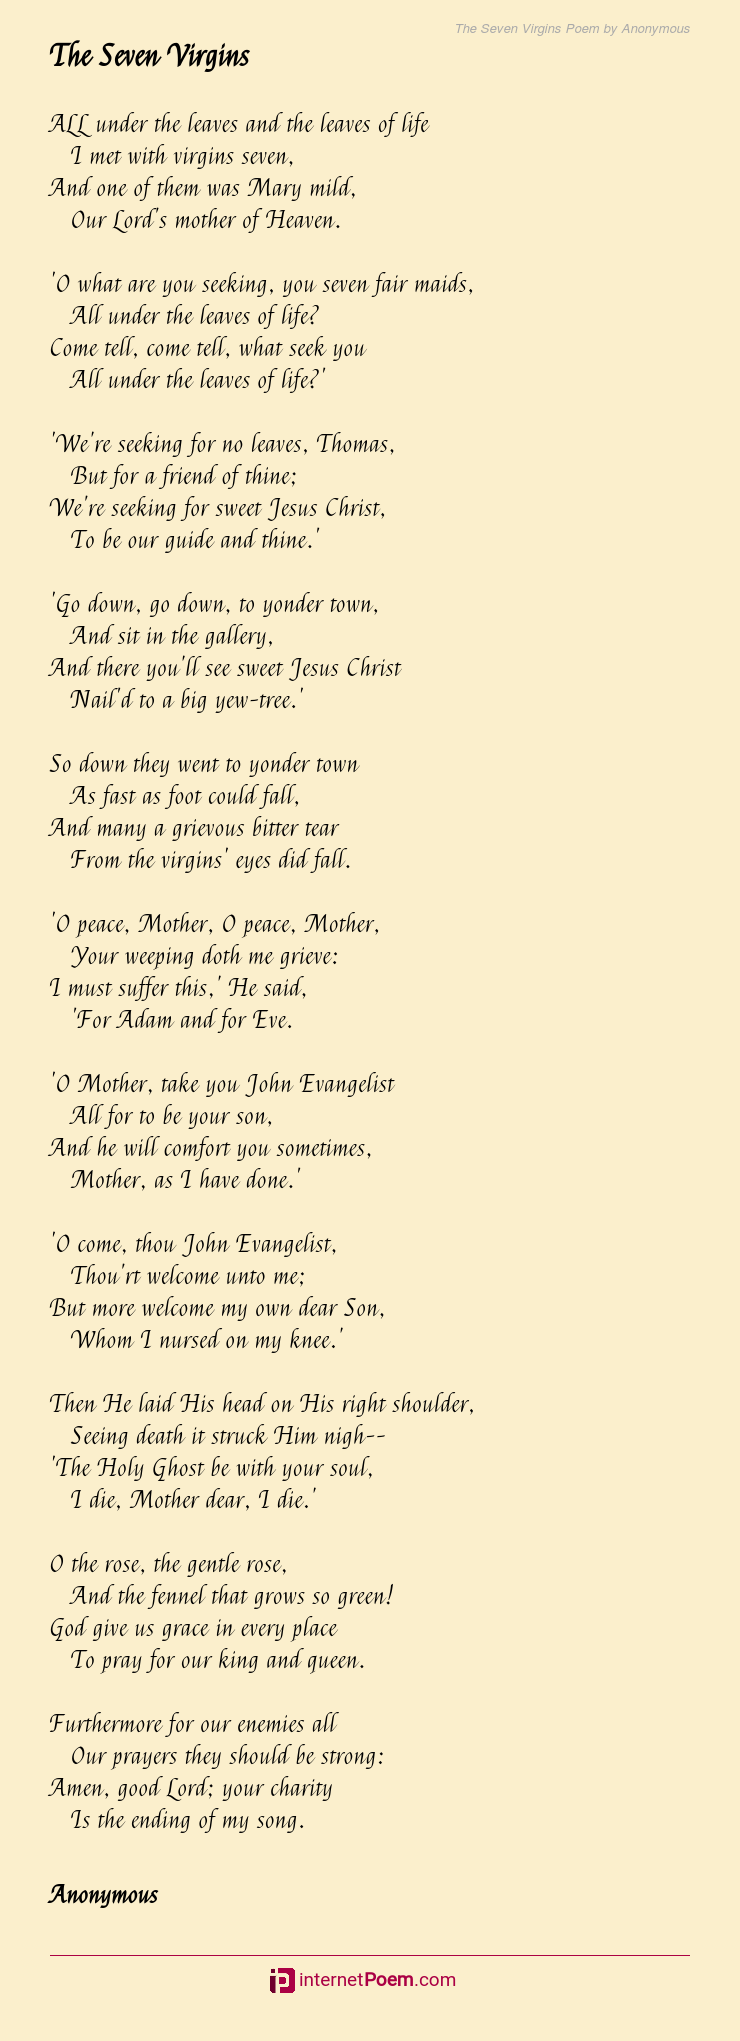 The Seven Virgins Poem by Anonymous